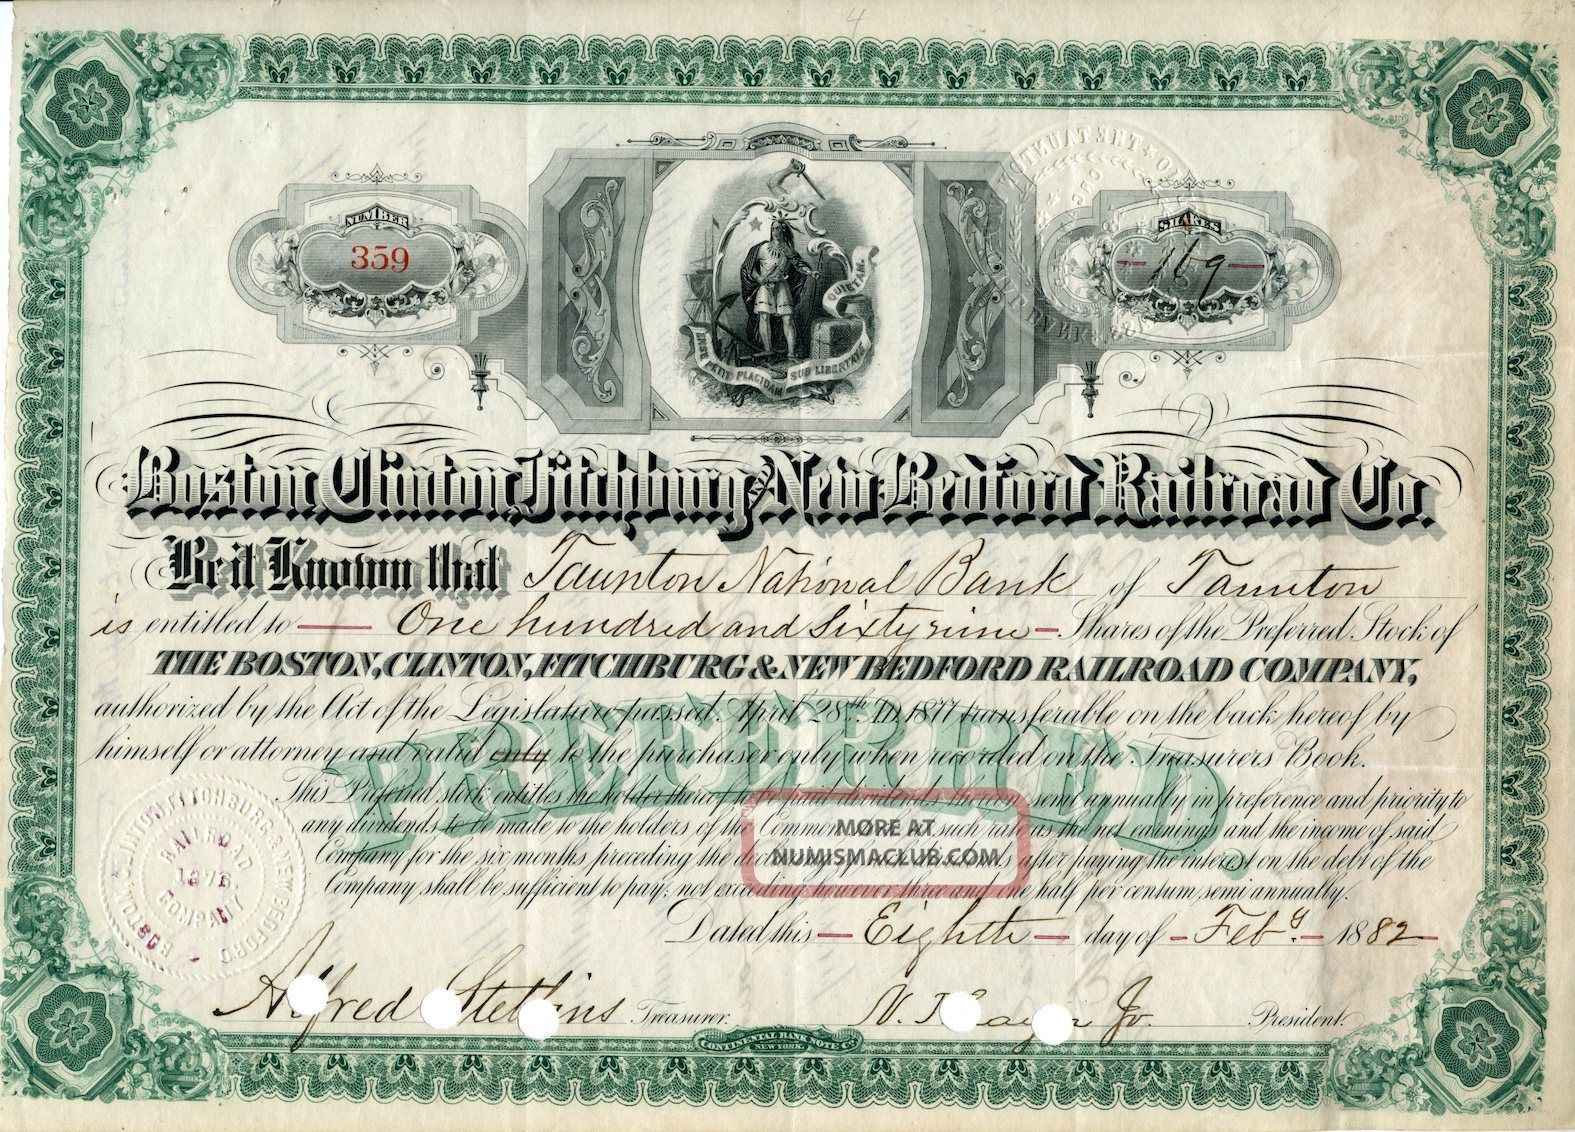 Boston,  Clinton,  Fitchburg,  And Bedford Rr Company Stock Certificate,  1882 Transportation photo